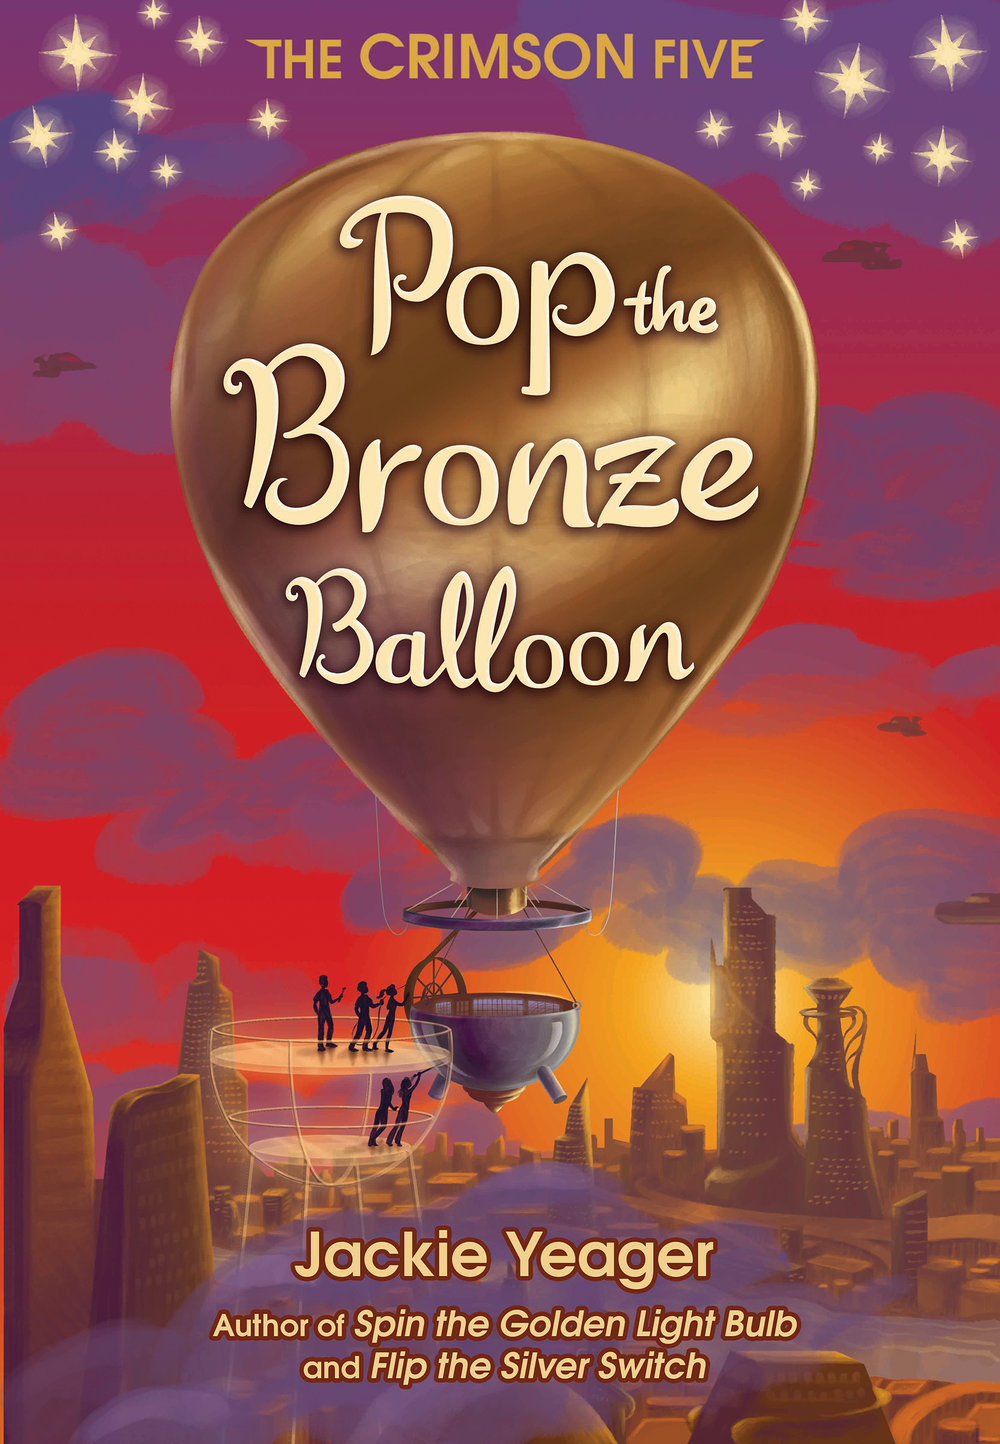 Pop the Bronze Balloon book cover, hot air balloon flying, five silhouettes working on the hot air balloon, sunset,